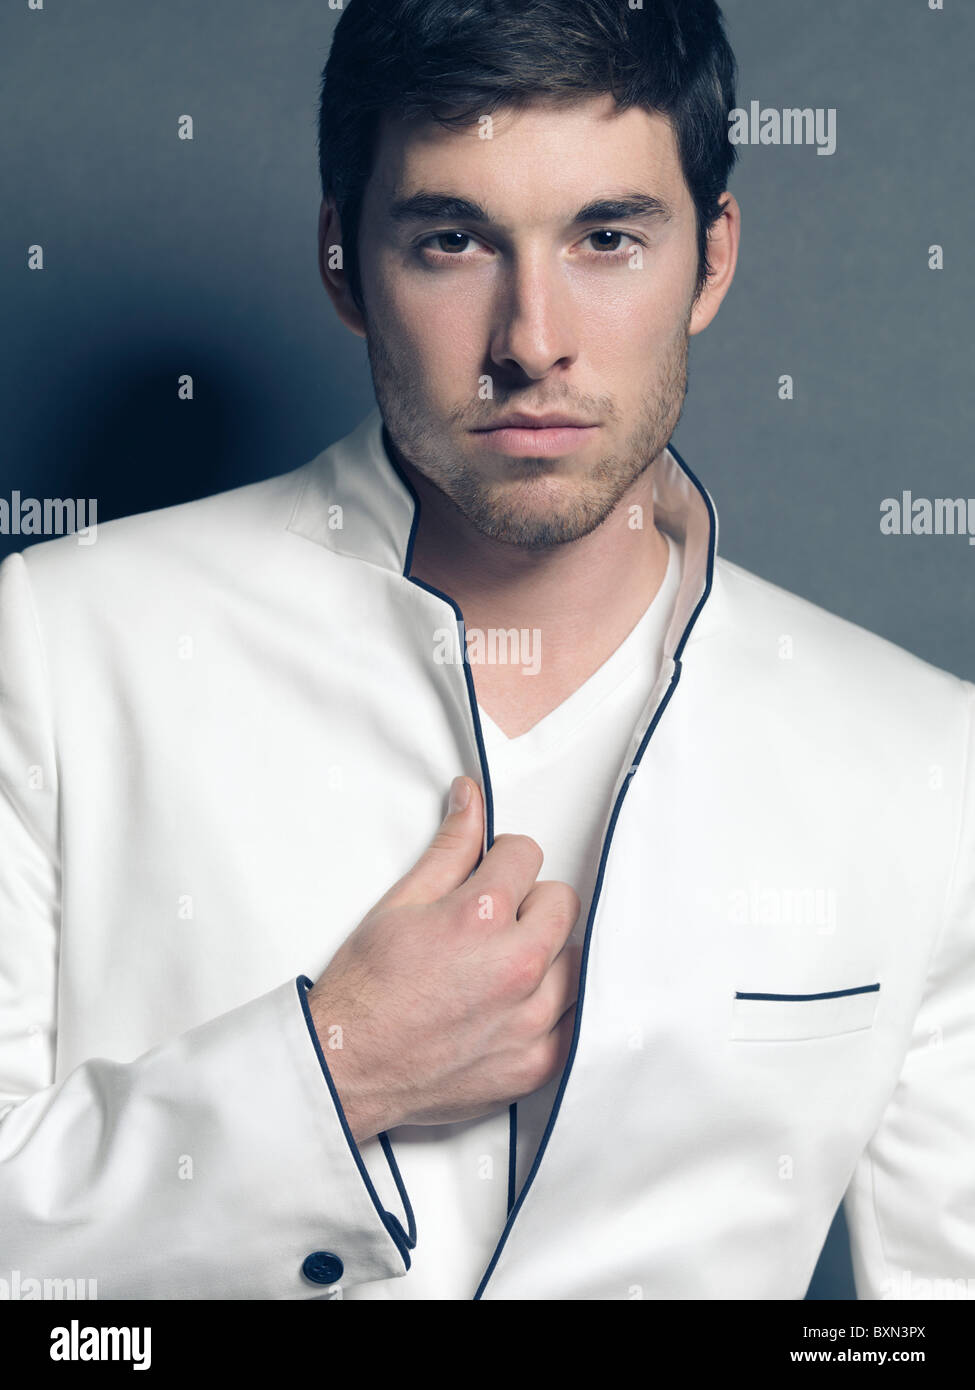 Fashion photo of a young smiling man wearing a white blazer - Stock Image